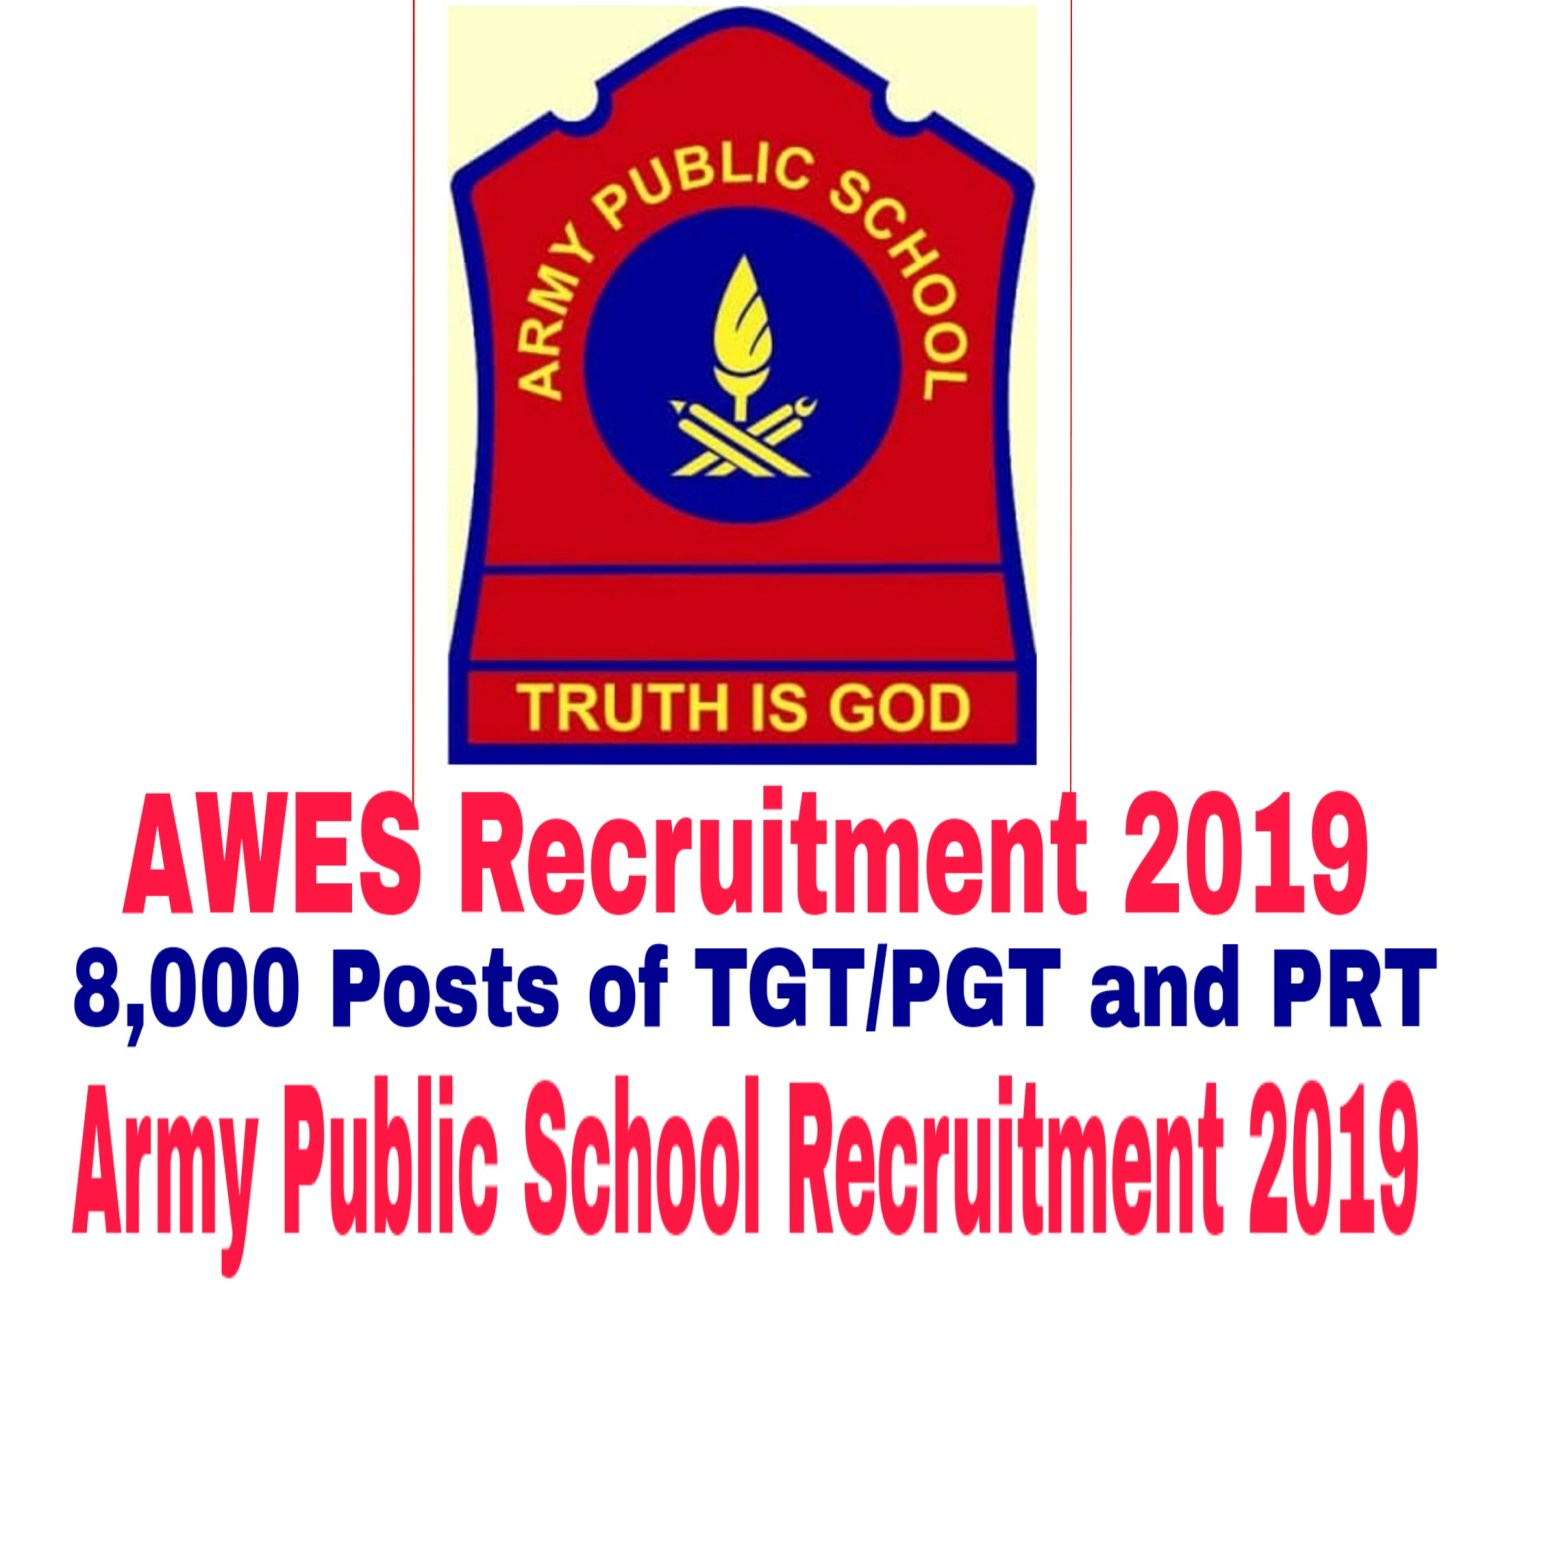 AWES Recruitment 2019 - 8,000 Posts of TGT/PGT and PRT